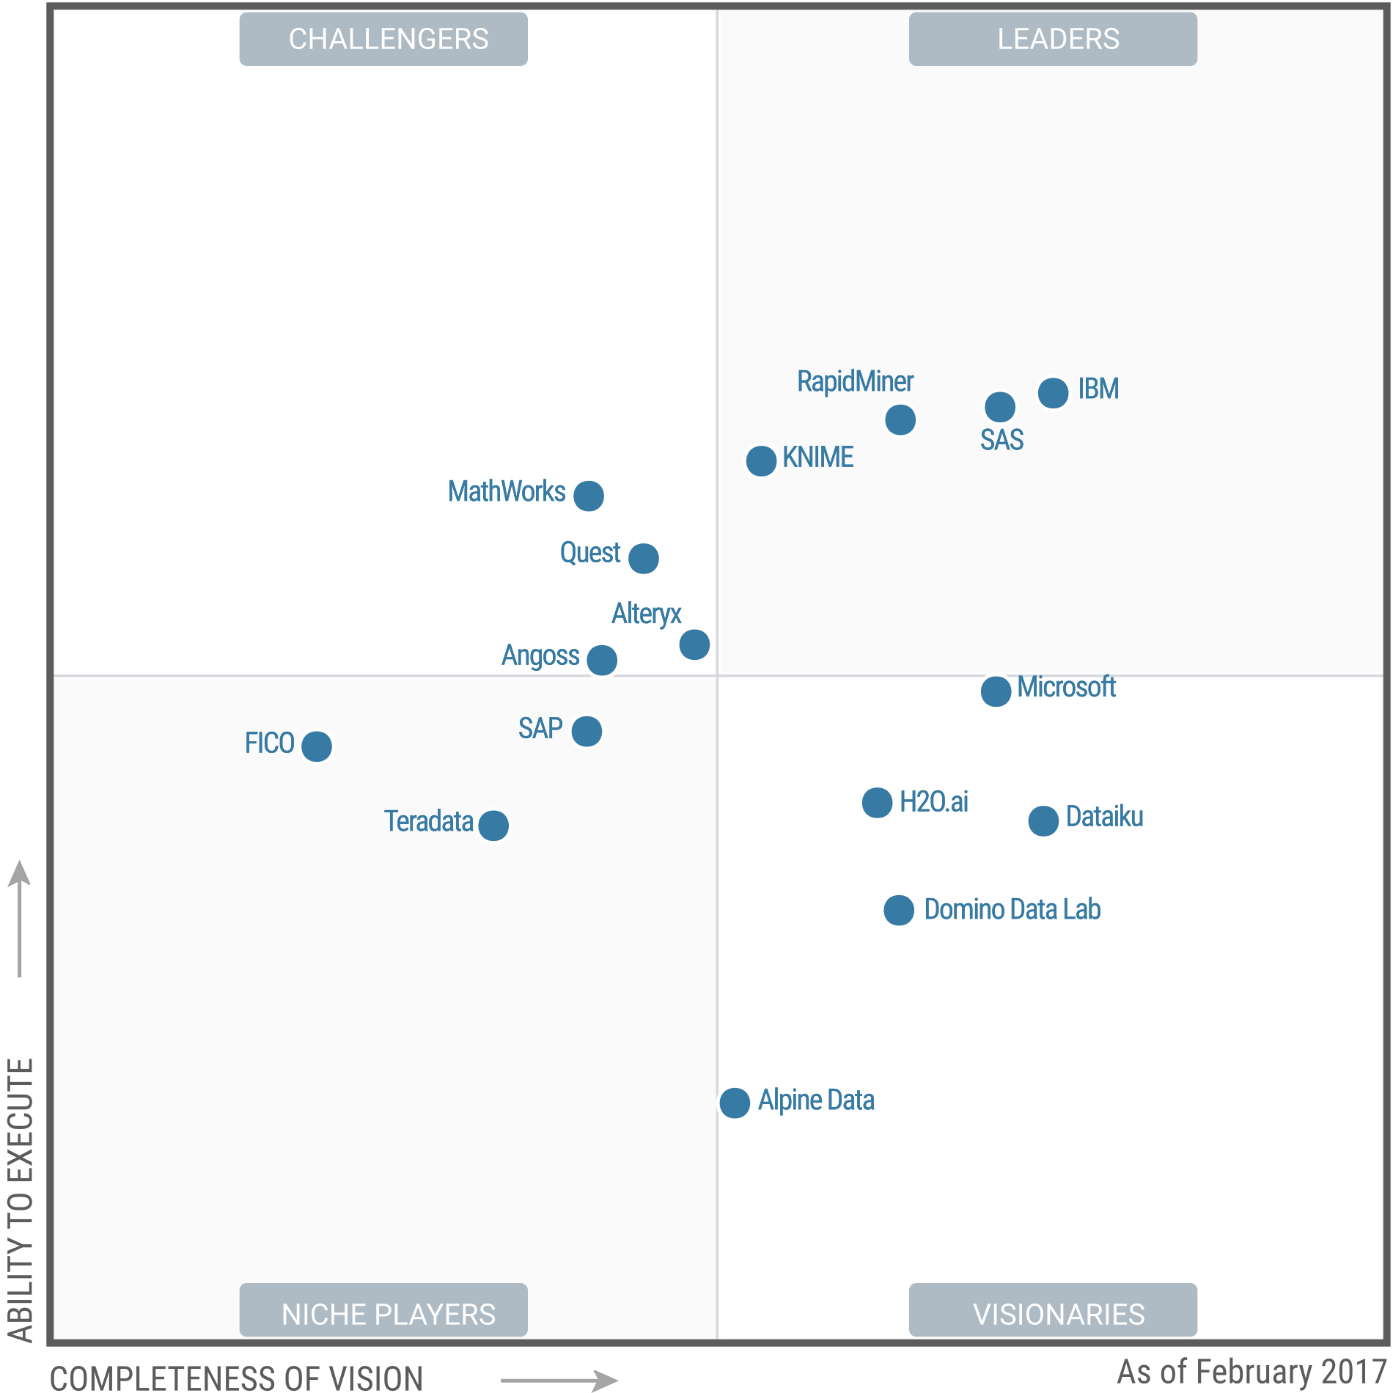 Magic Quadrant for Data Science Platforms 2017 (G00301536)